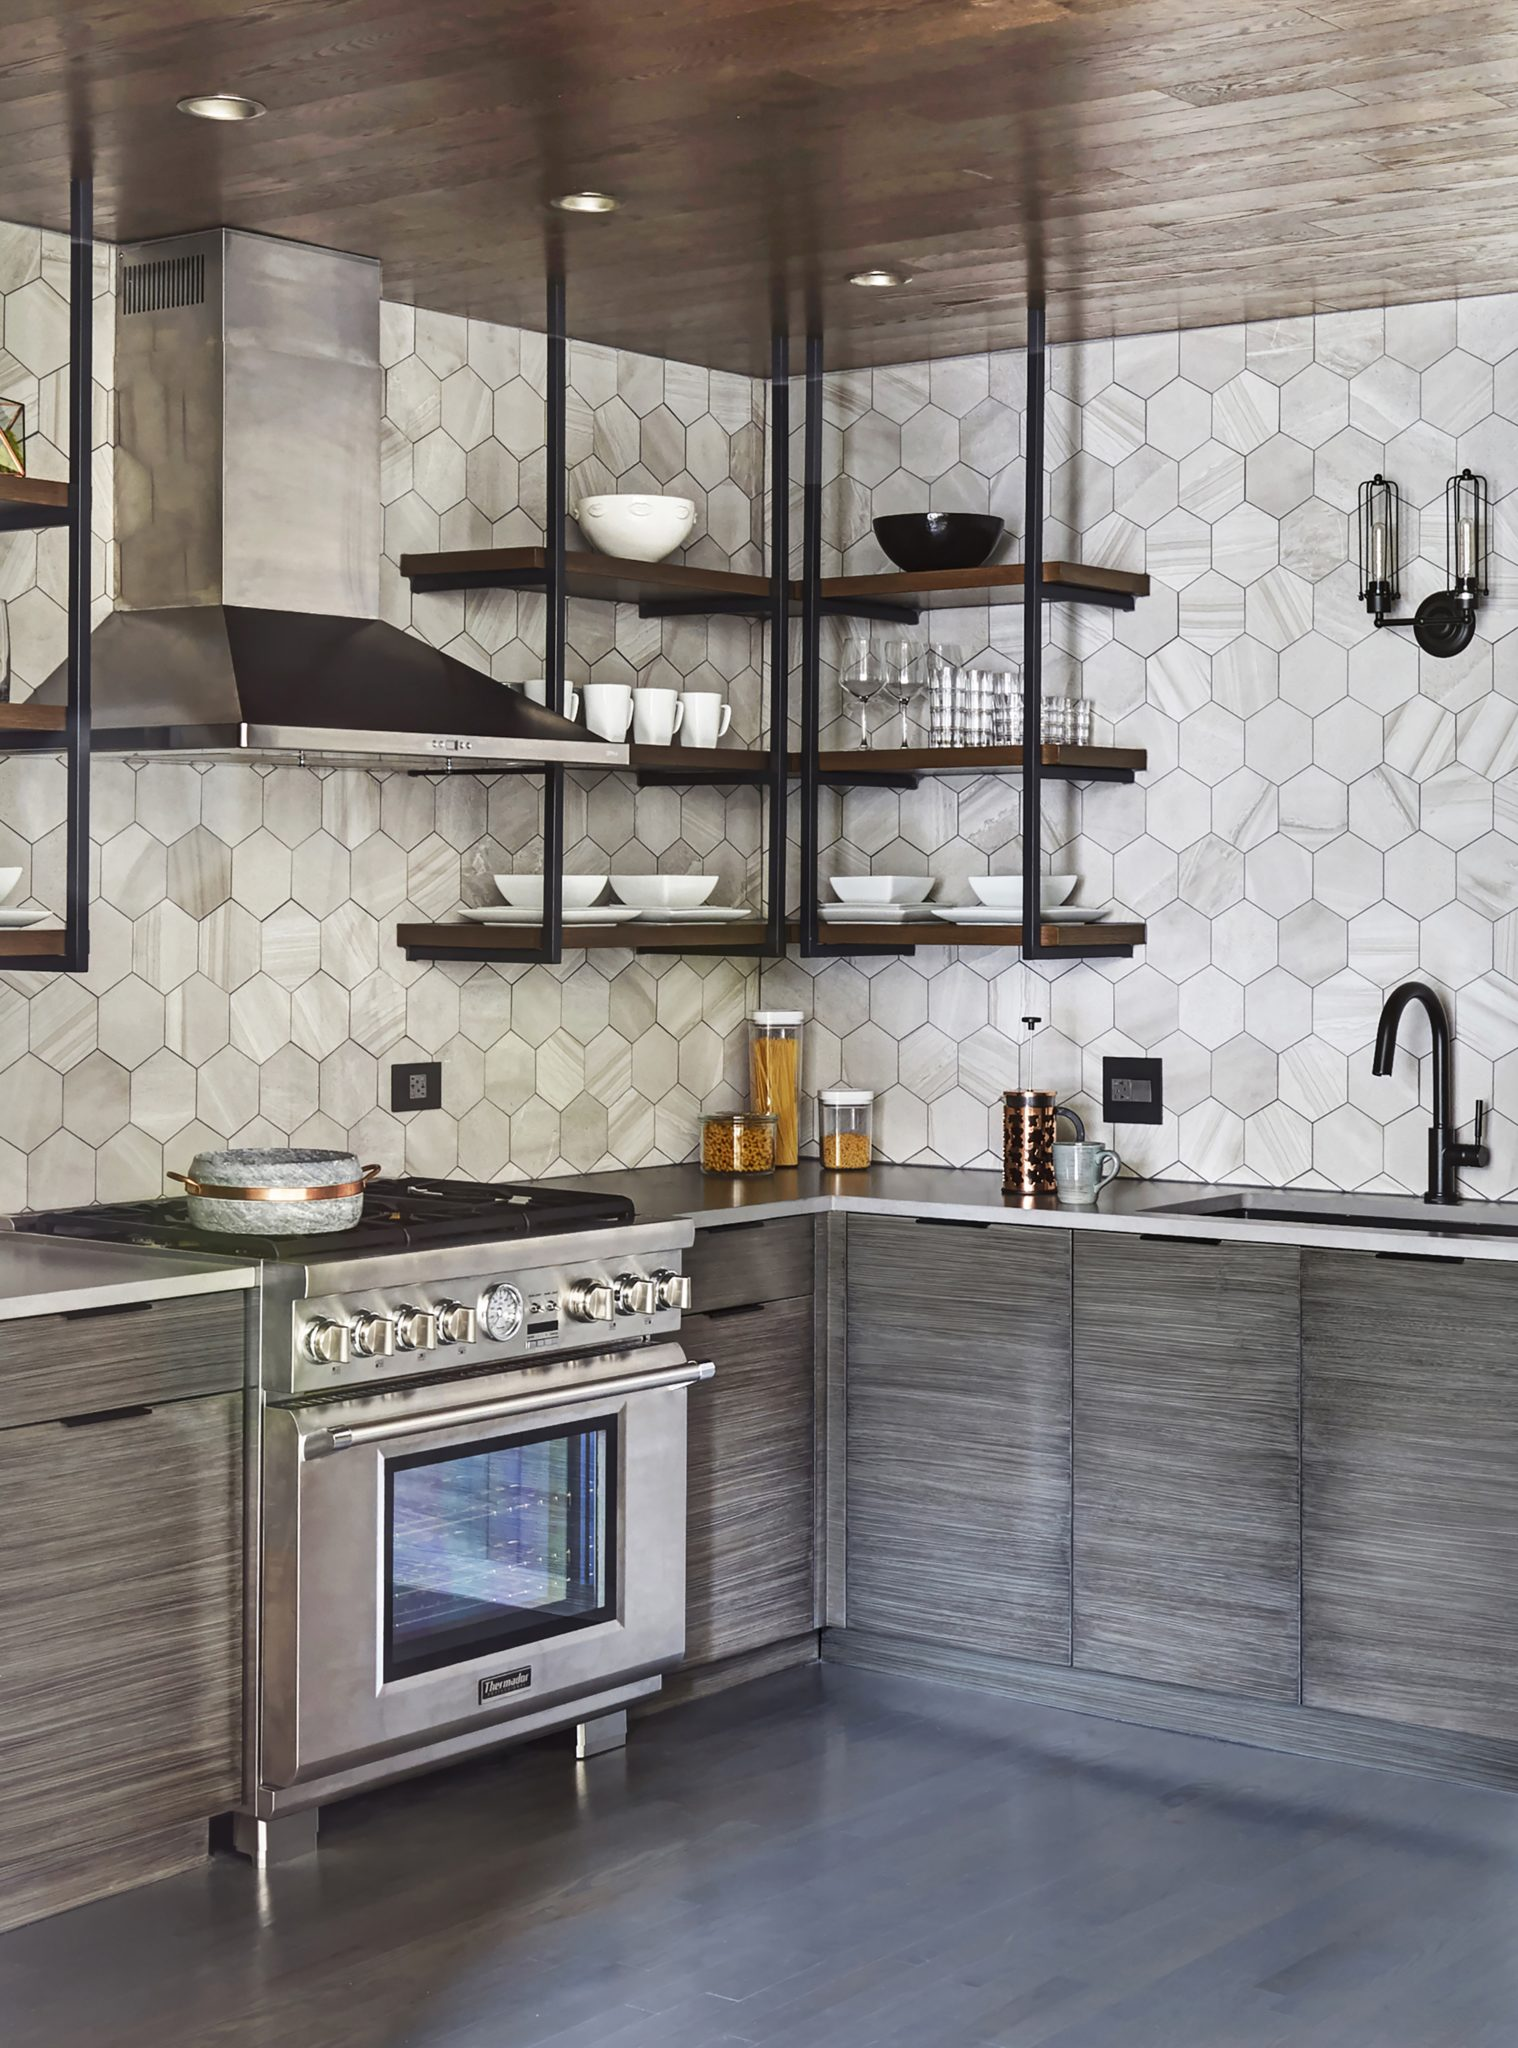 Lincoln Park Condo Kitchen by MILIEU